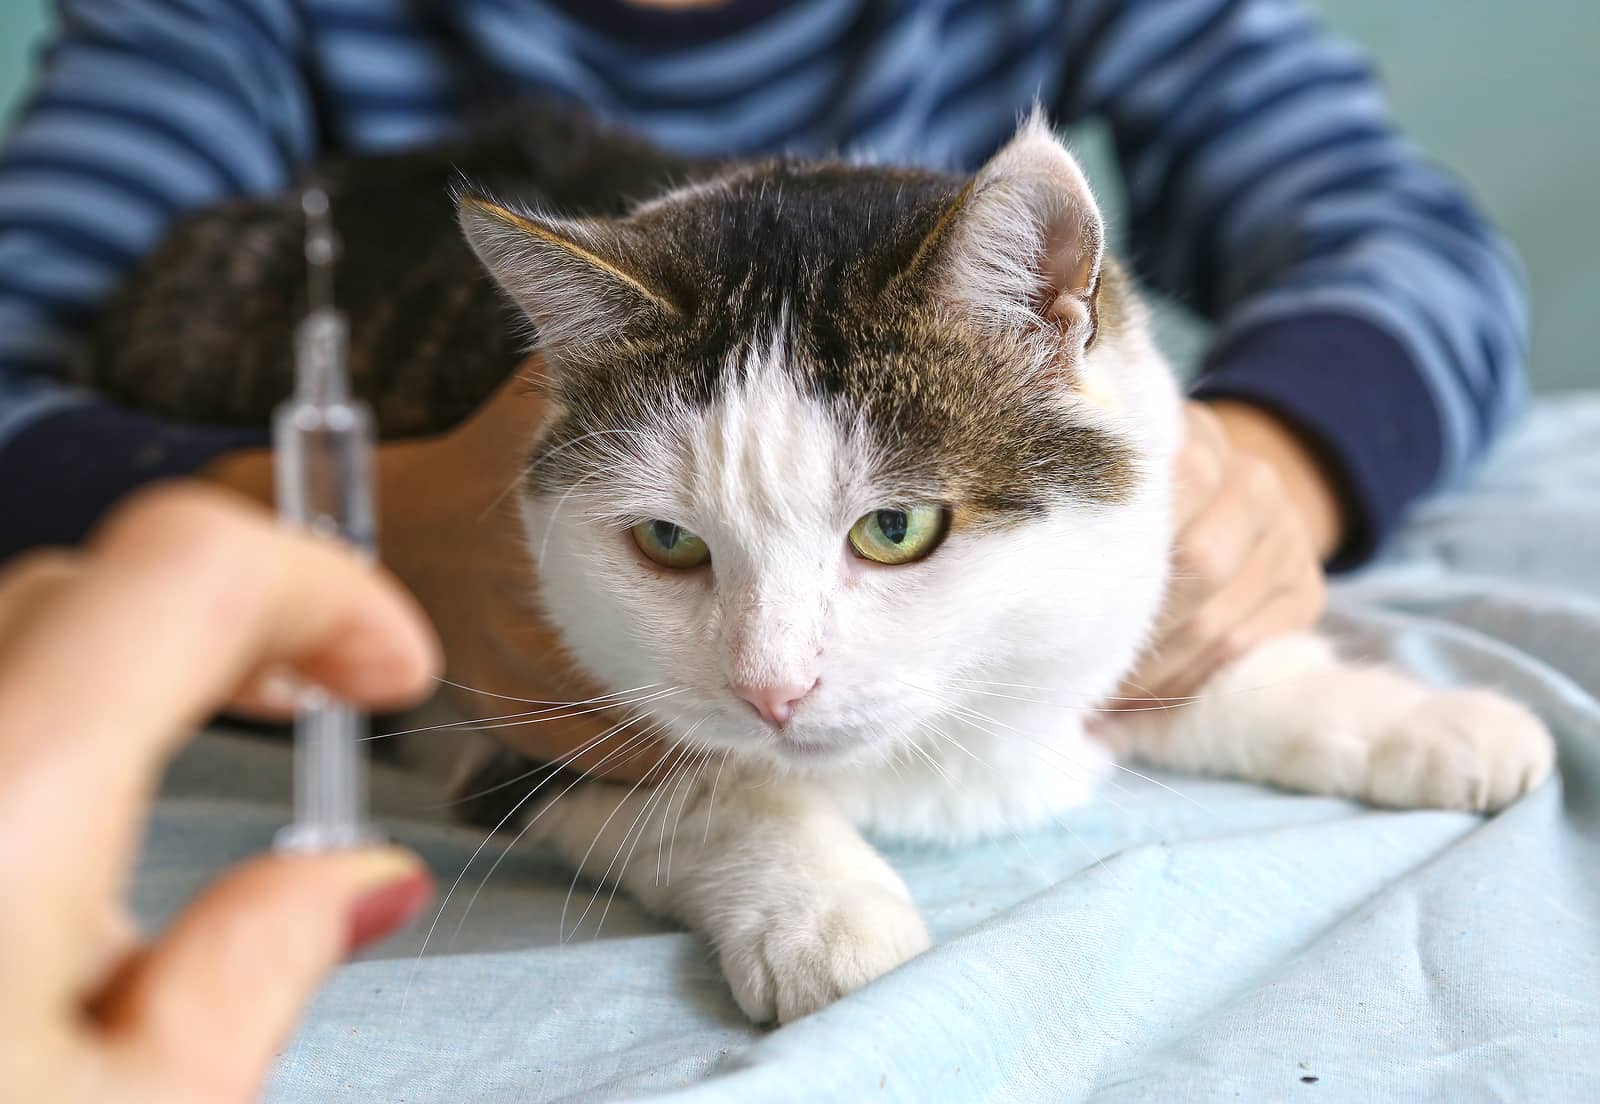 Veterinarian hand with syringe and cat close up photo